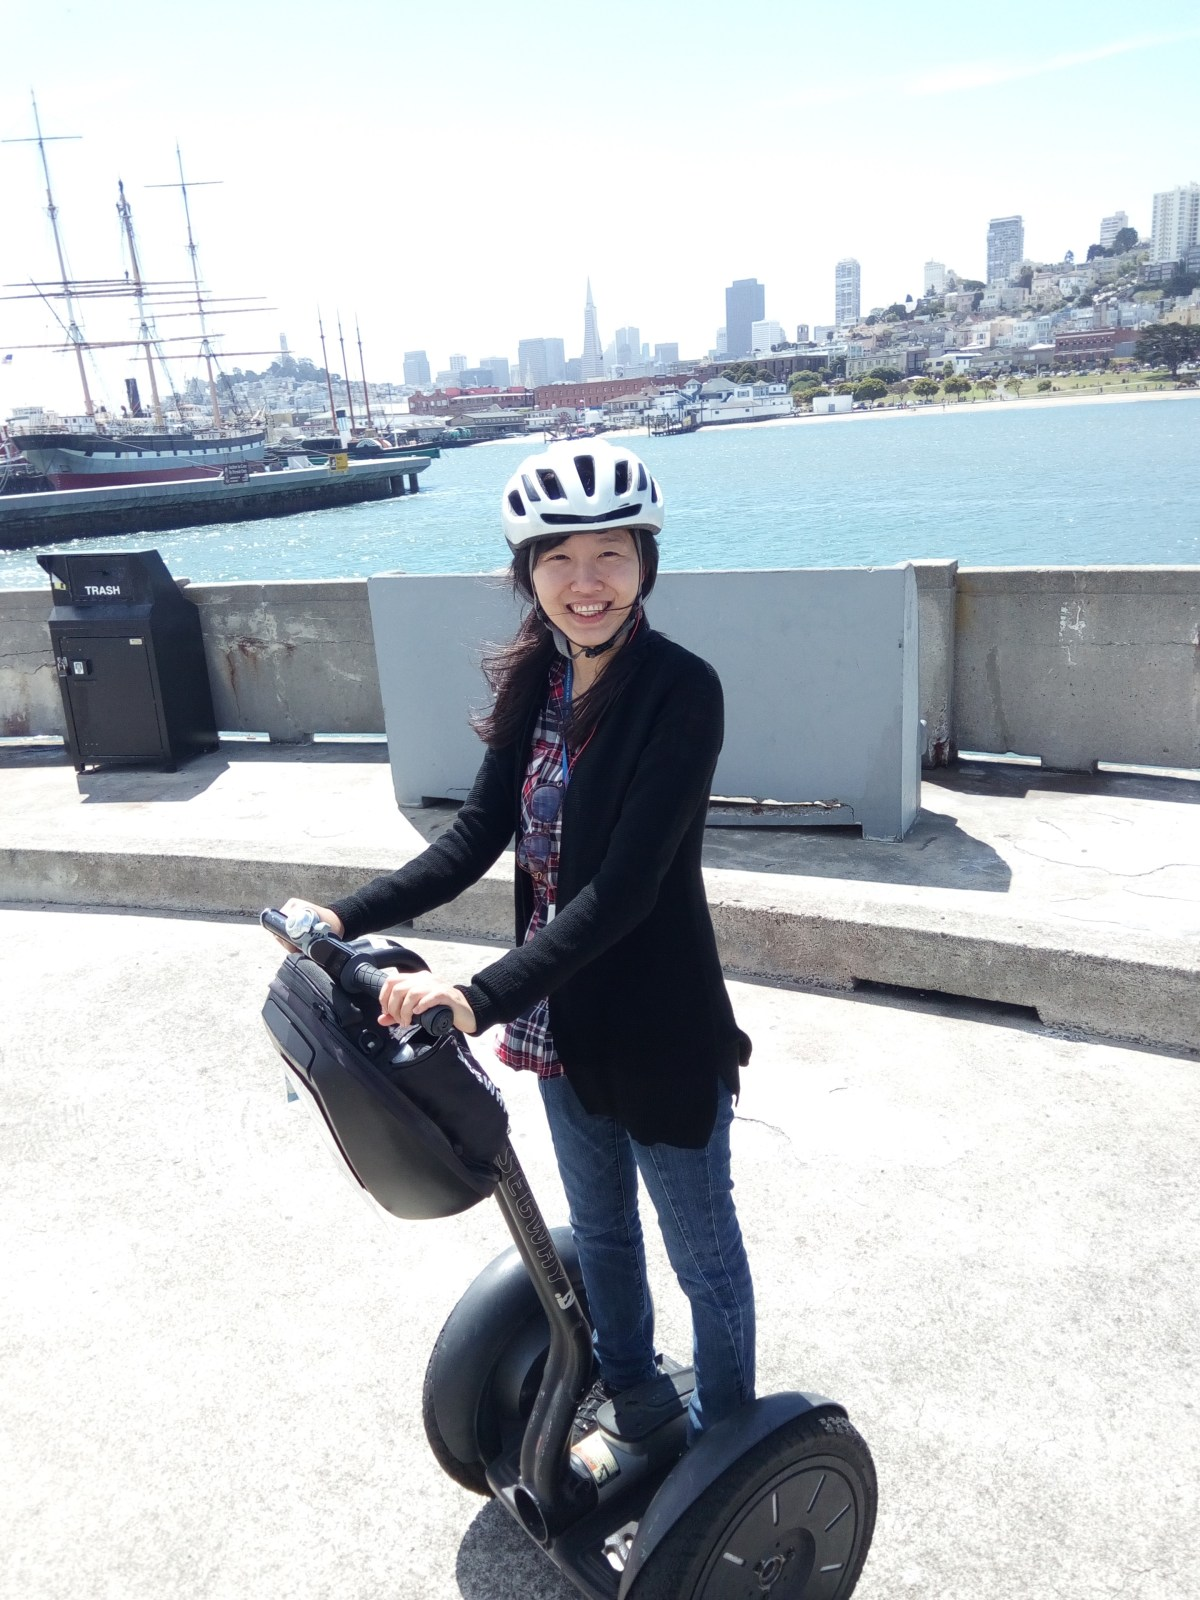 Segway by the bay